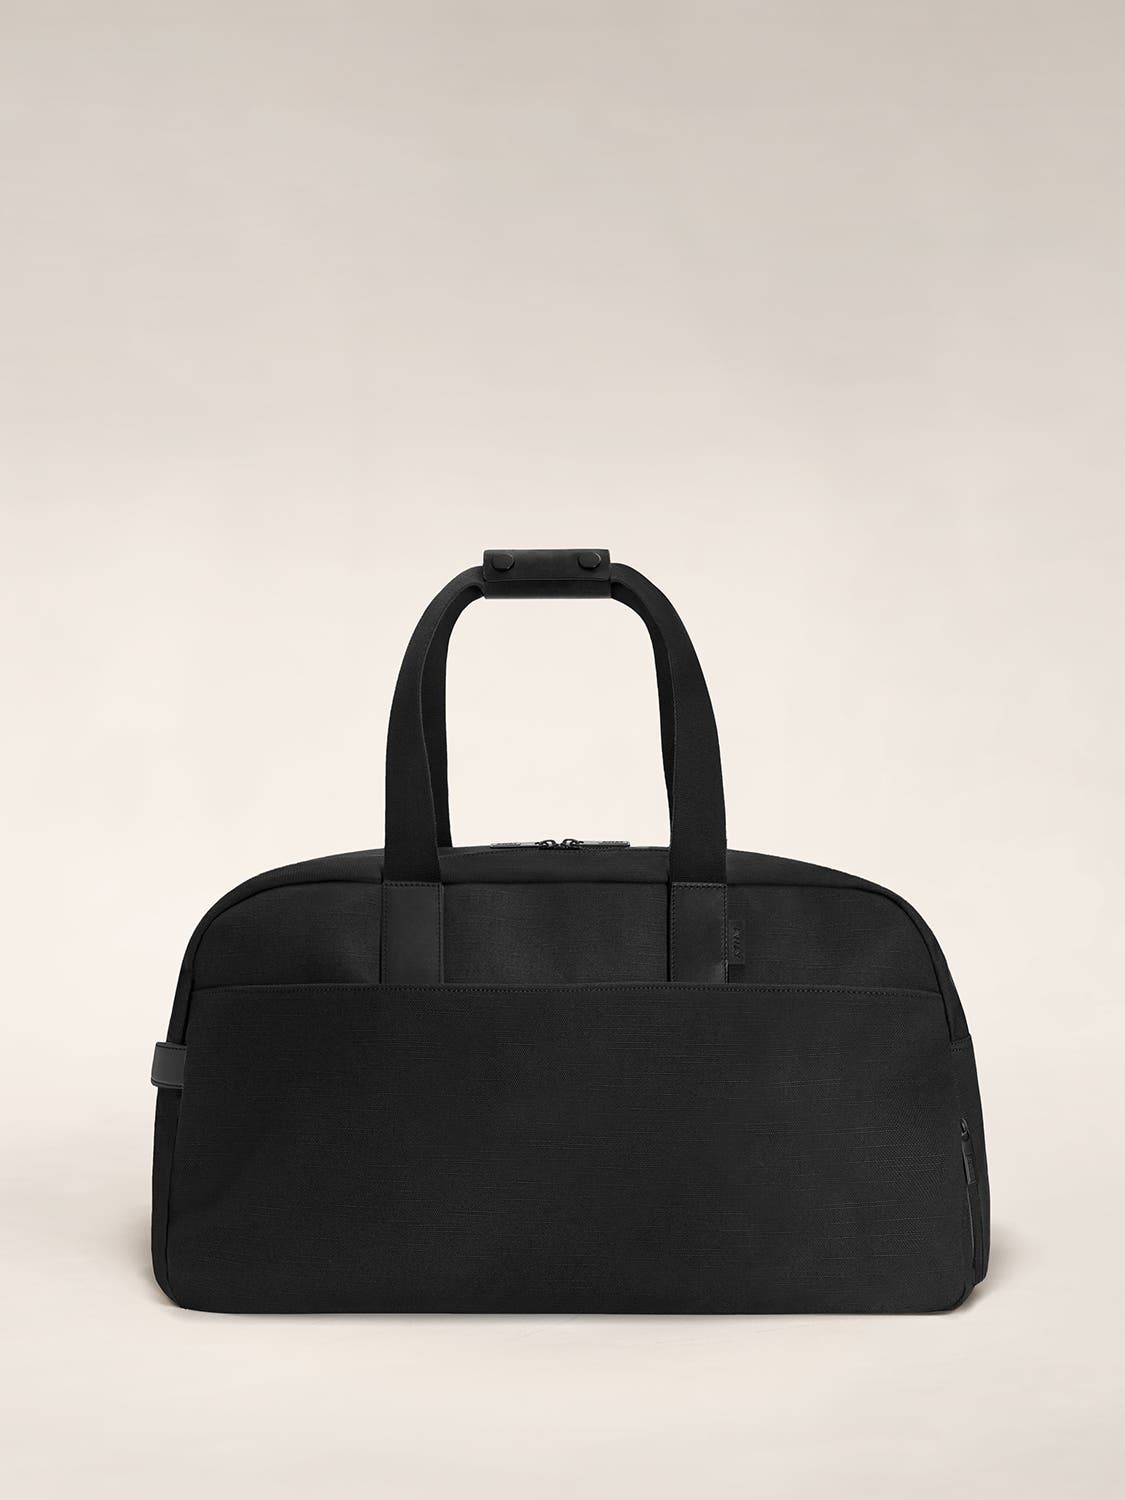 A canvas duffle bag in the color black with black leather trim.